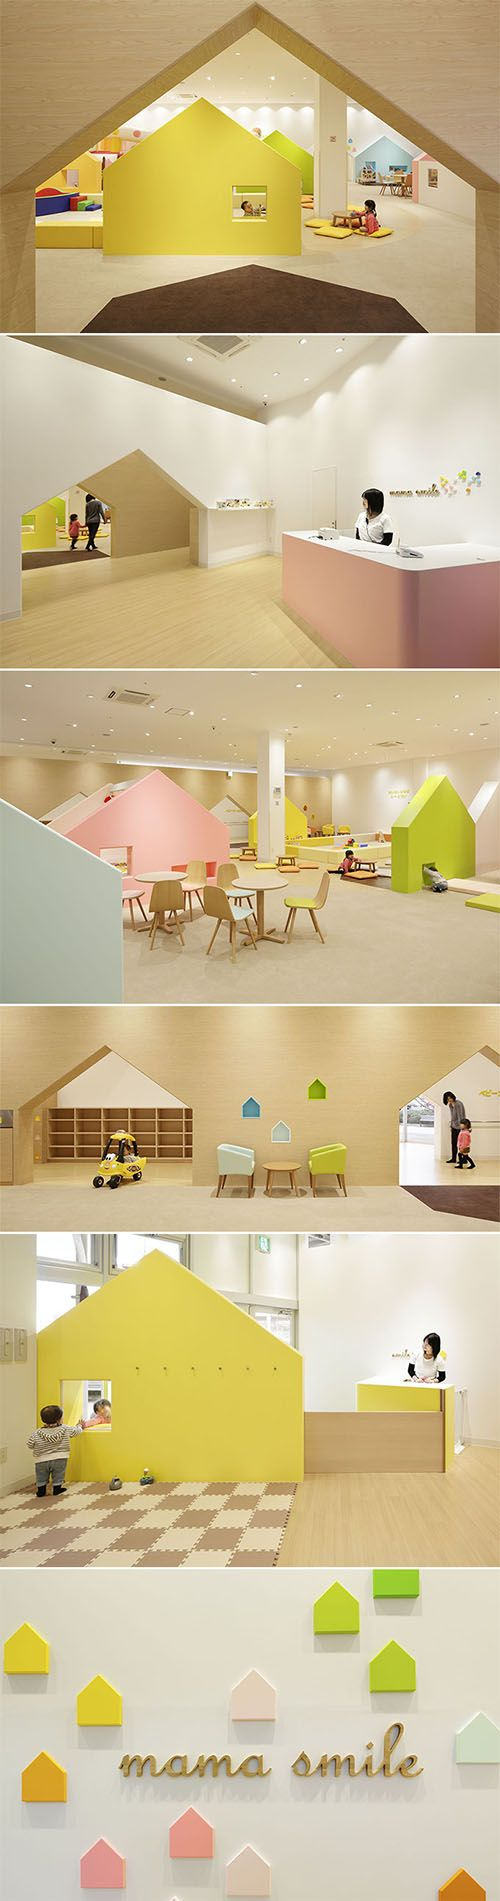 17 Best ideas about Indoor Playground on Pinterest  Kids indoor